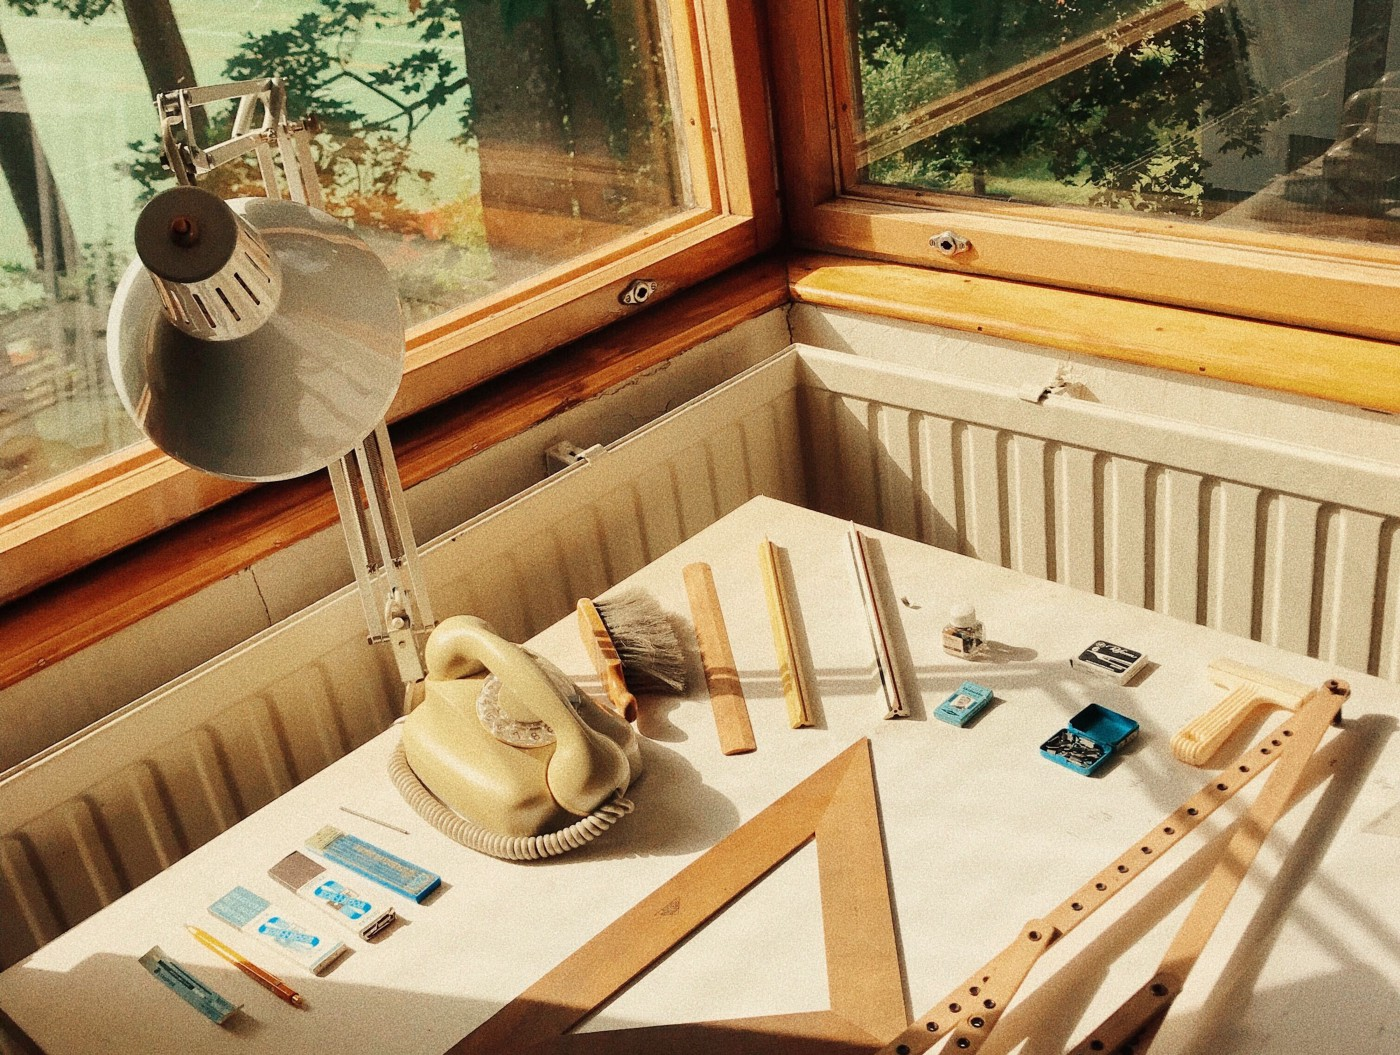 Table, lamp, and the architect's material next to the window